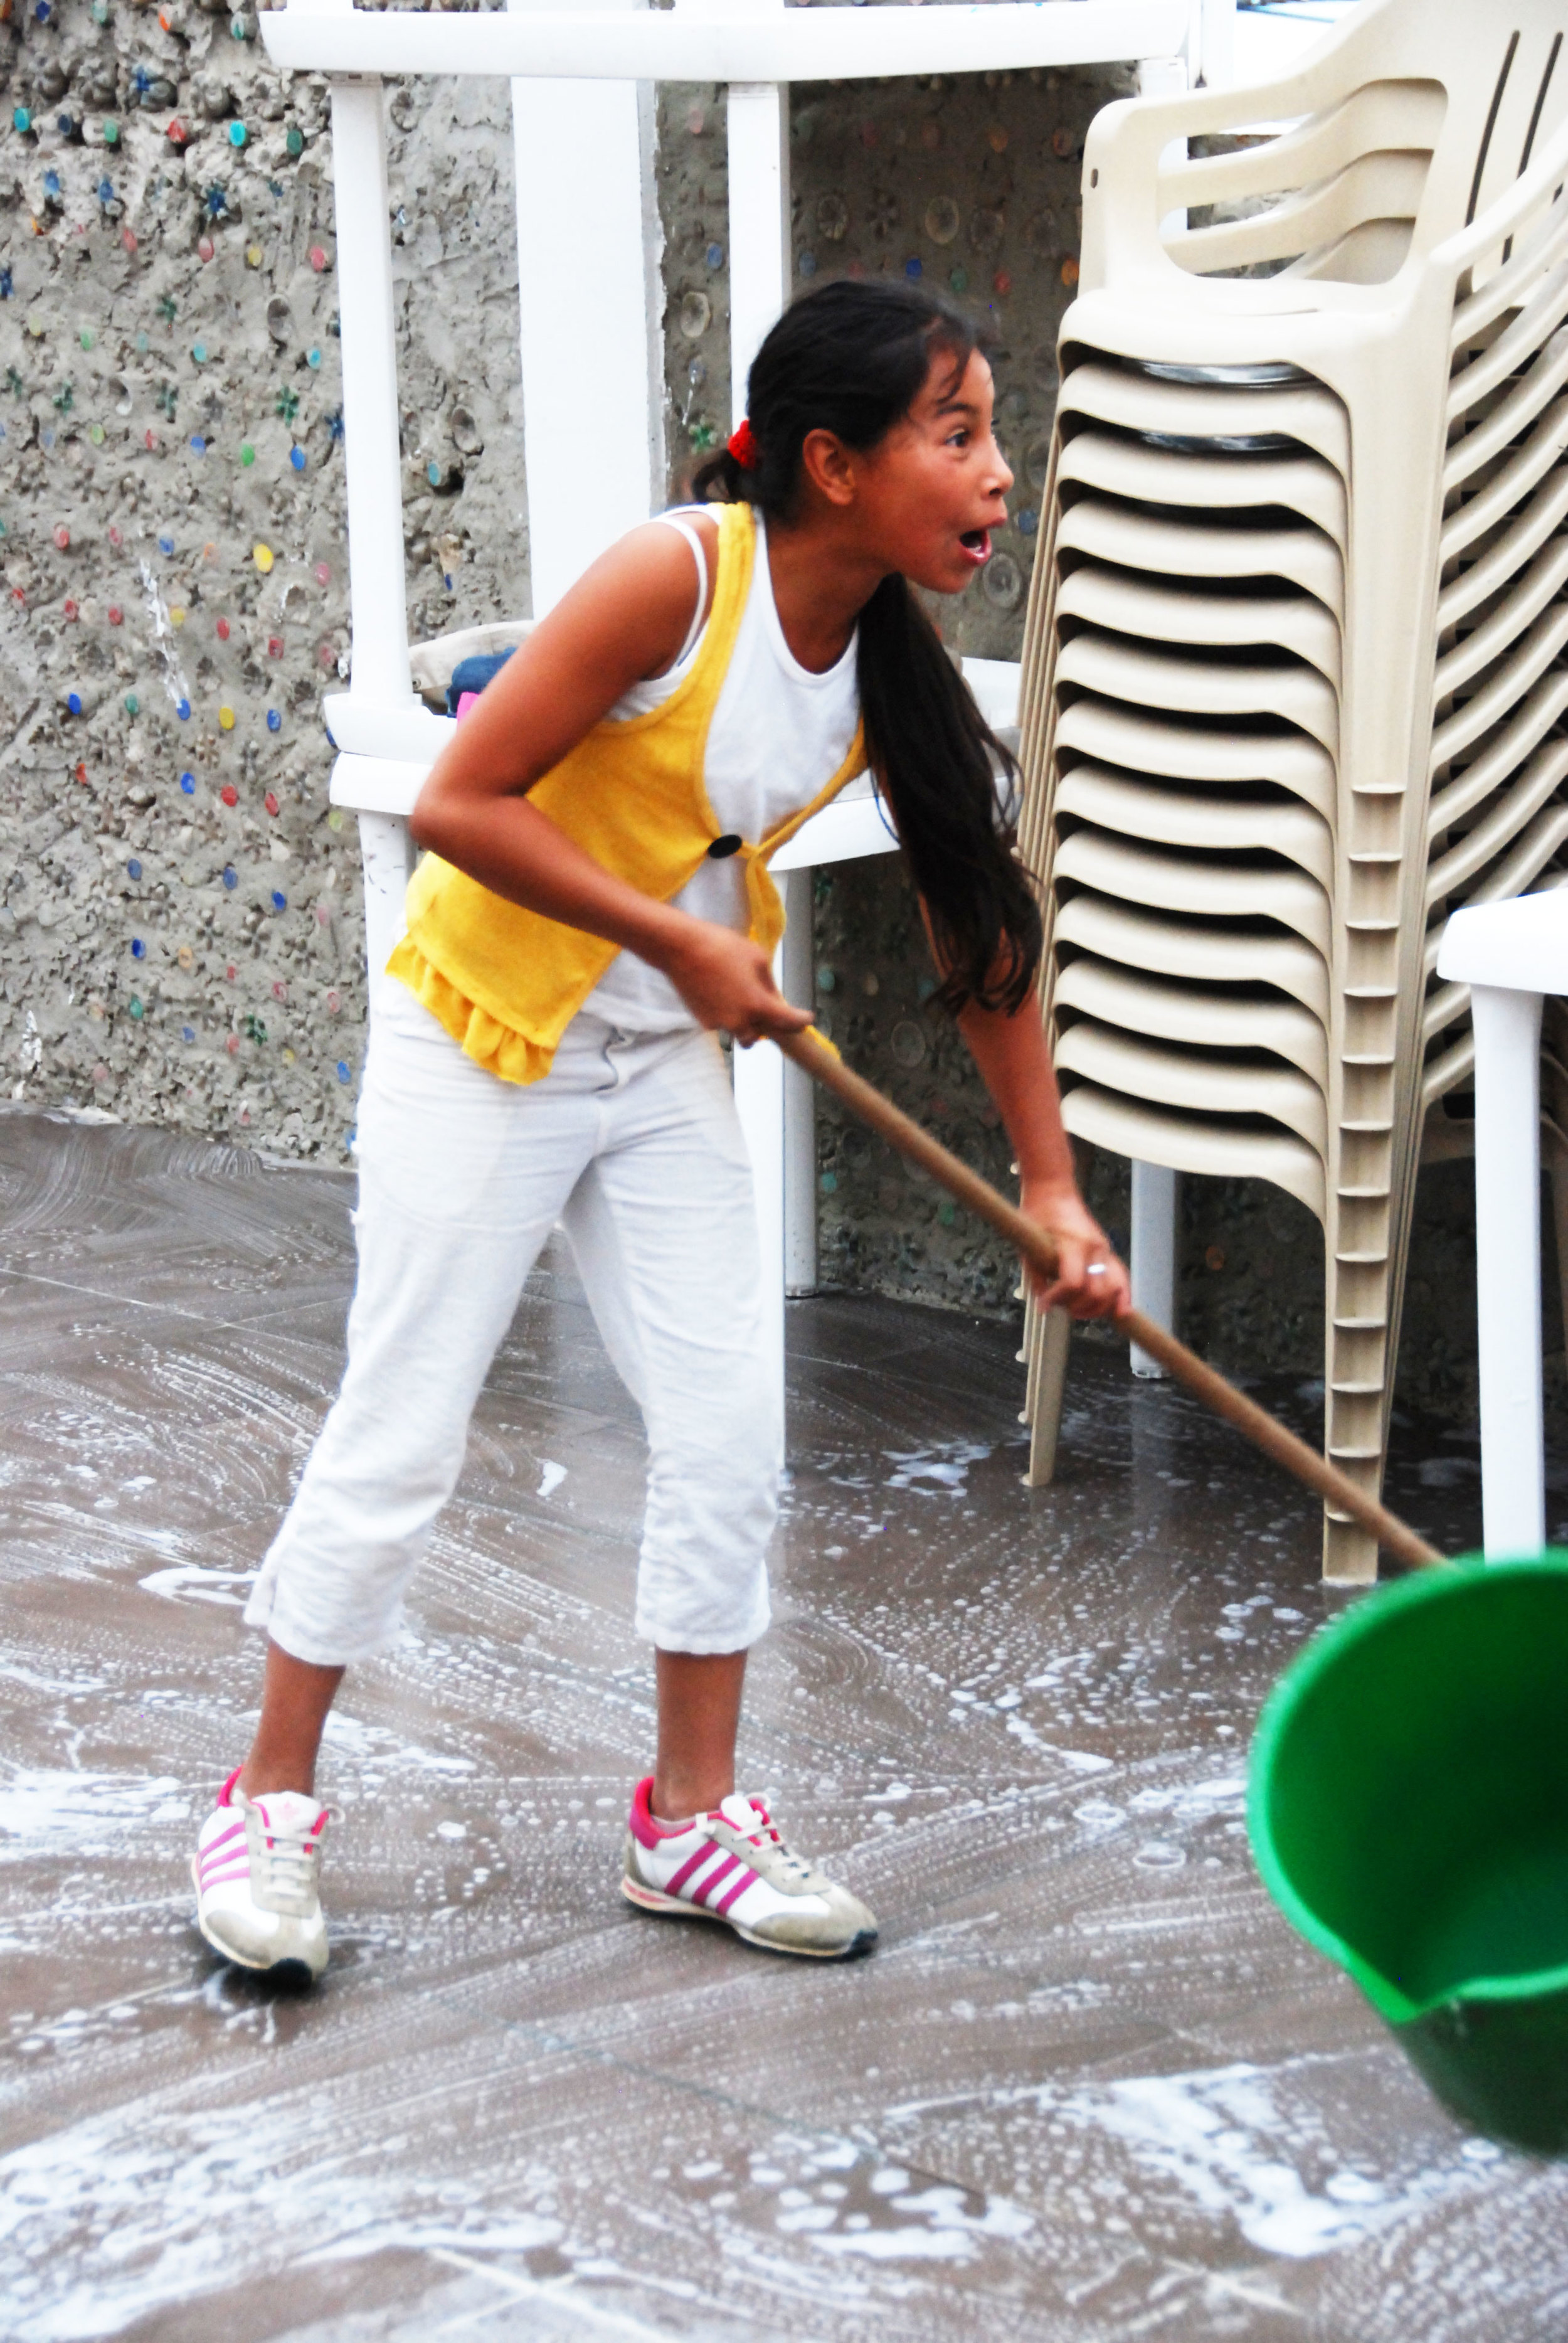 The kids join forces to clean the center after the activities